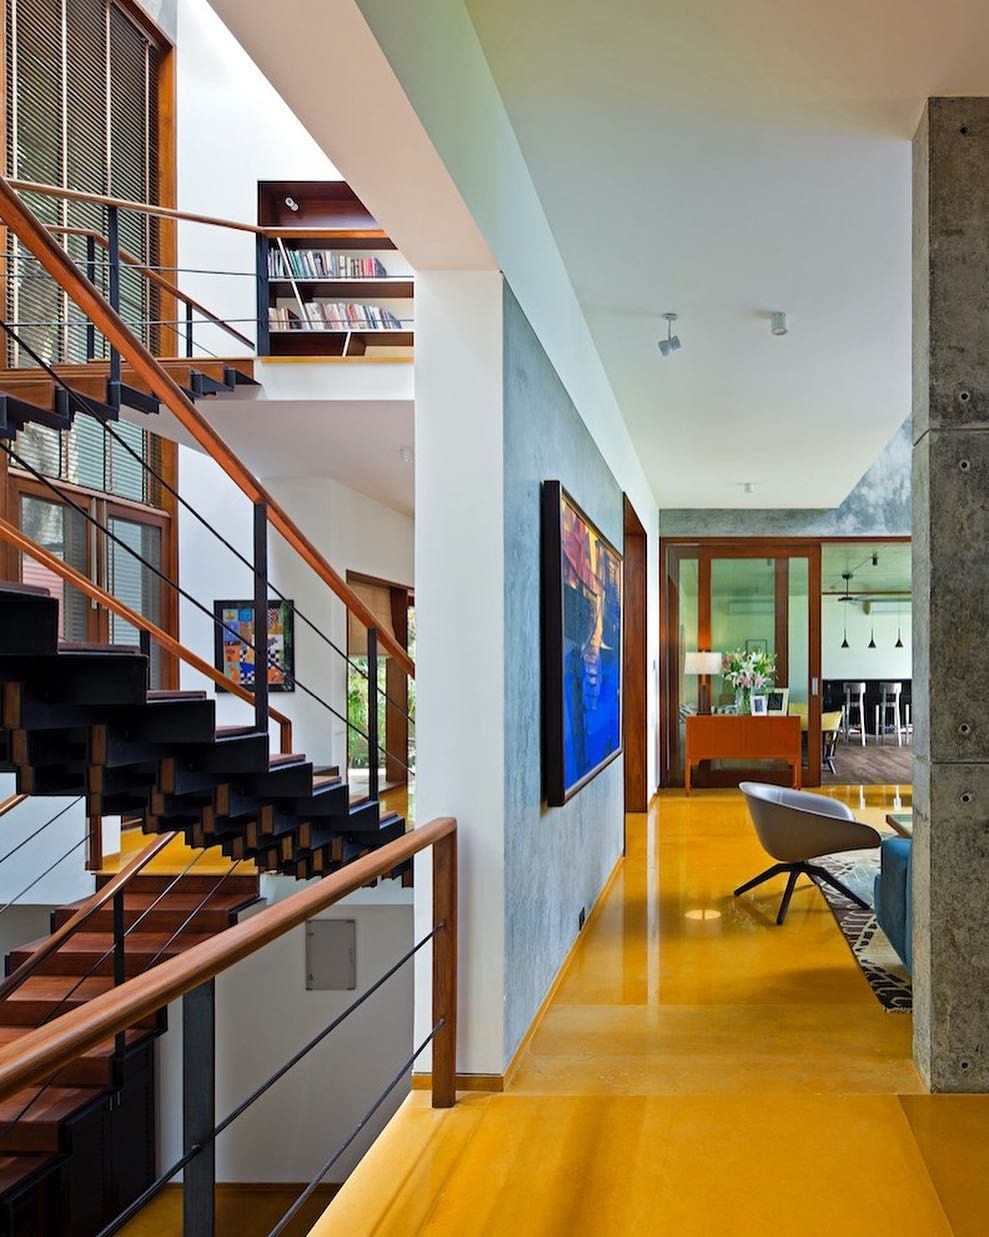 Decor aura spa design by khosla associates architecture interior - Khosla Associates Have Designed The Bhuwalka House A Contemporary Home For A Young Couple And Their Teenage Daughter In Bangalore India